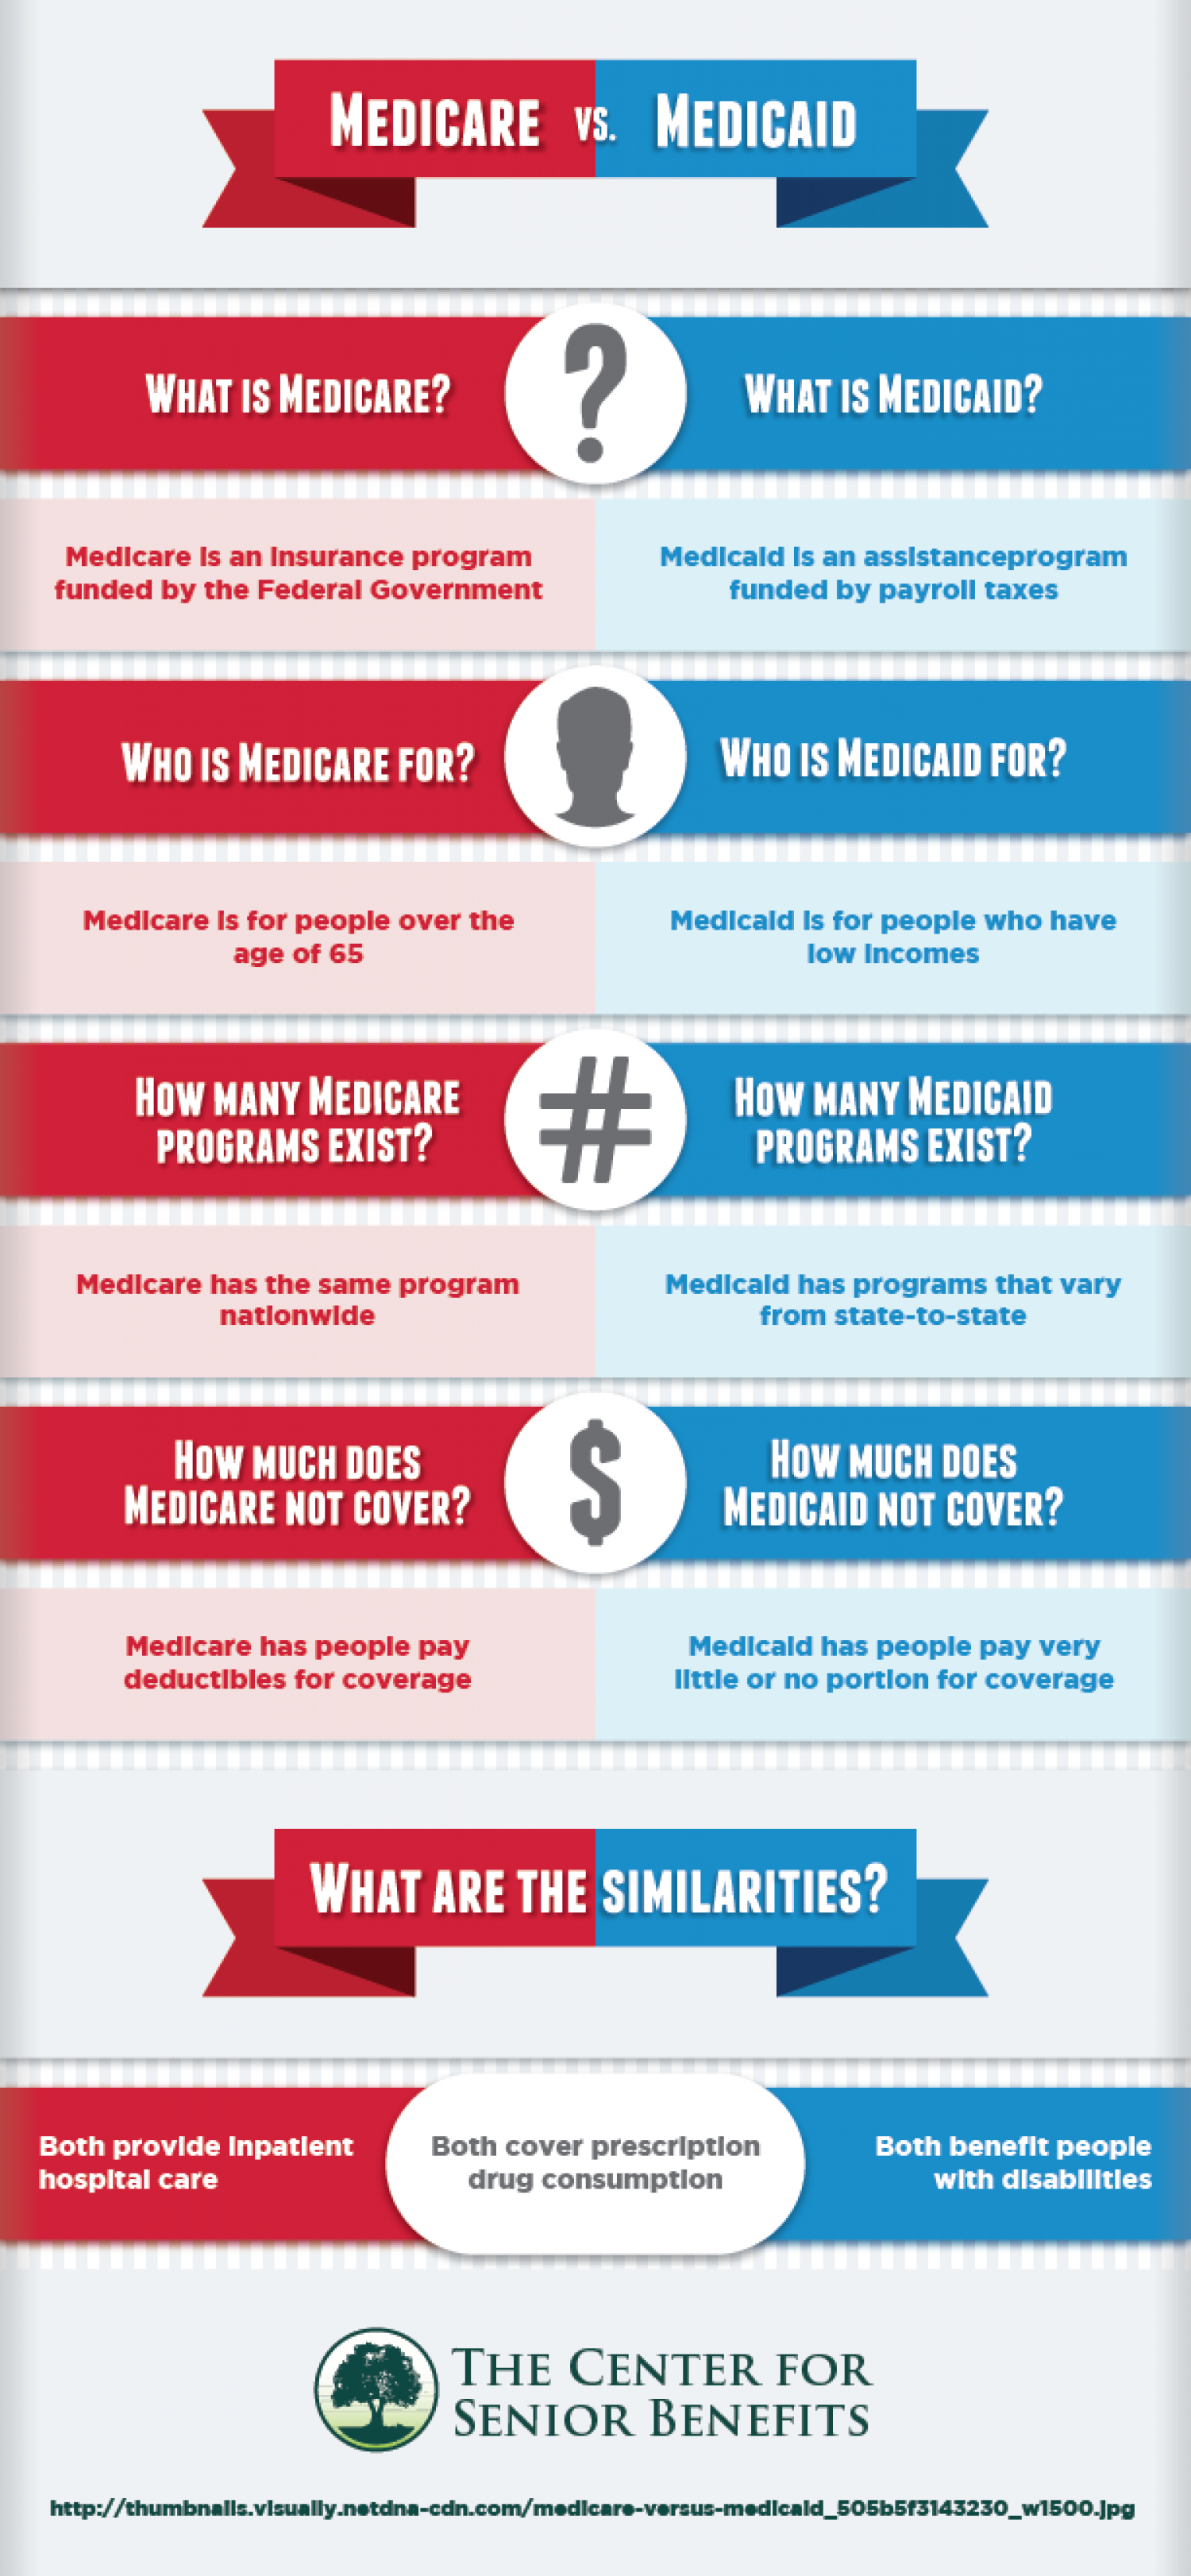 medicaid essay Below is an essay on medicare vs medicaid from anti essays, your source for research papers, essays, and term paper examples health insurance can be an expensive cost to any one of any age there are programs out there that can help people with the expense of health insurance.